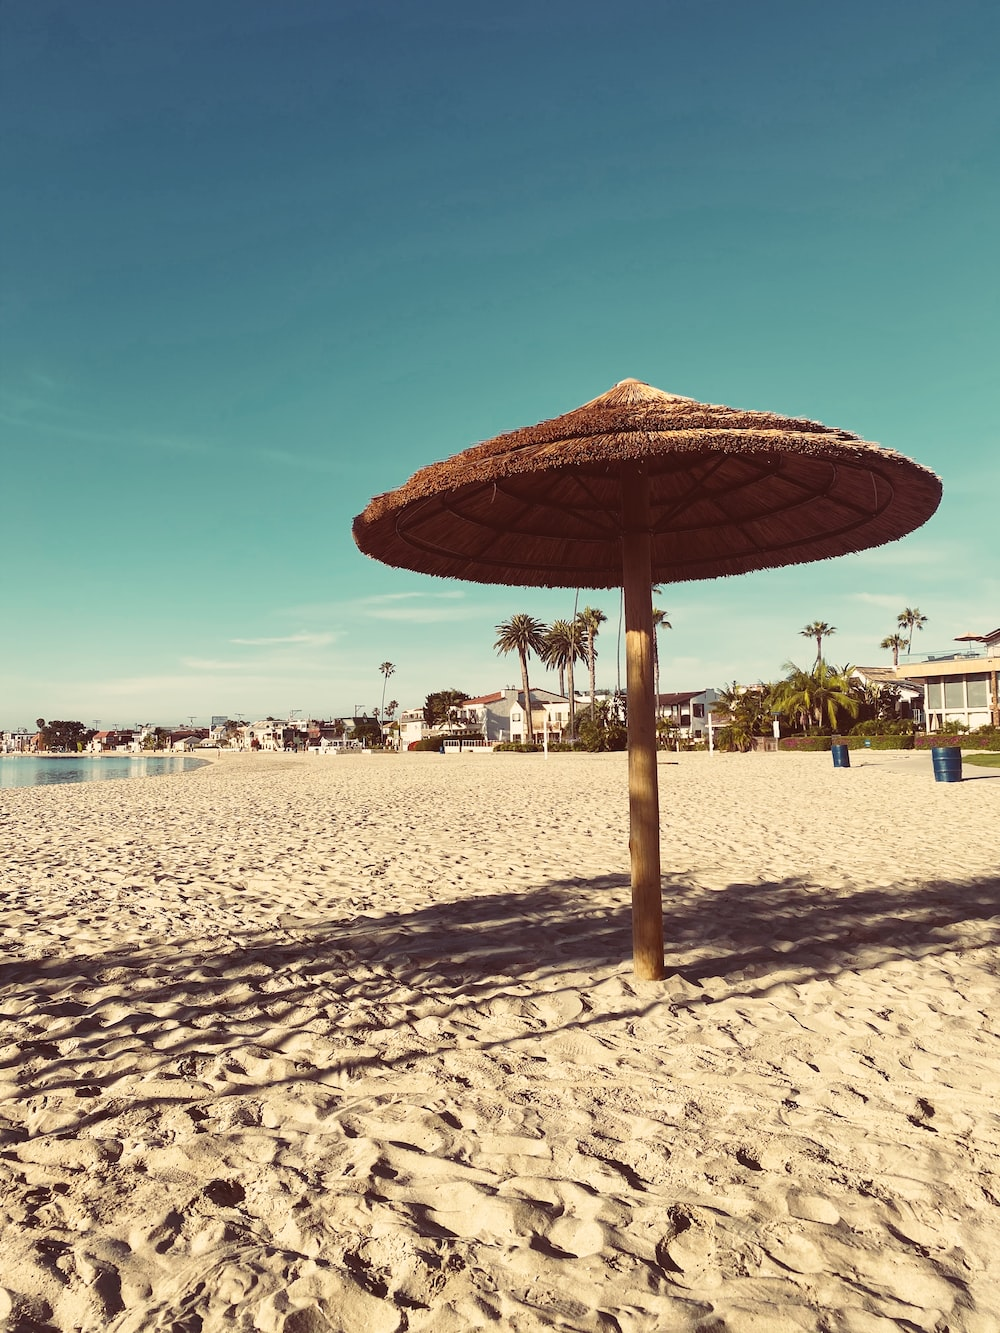 brown and white umbrella on beach during daytime